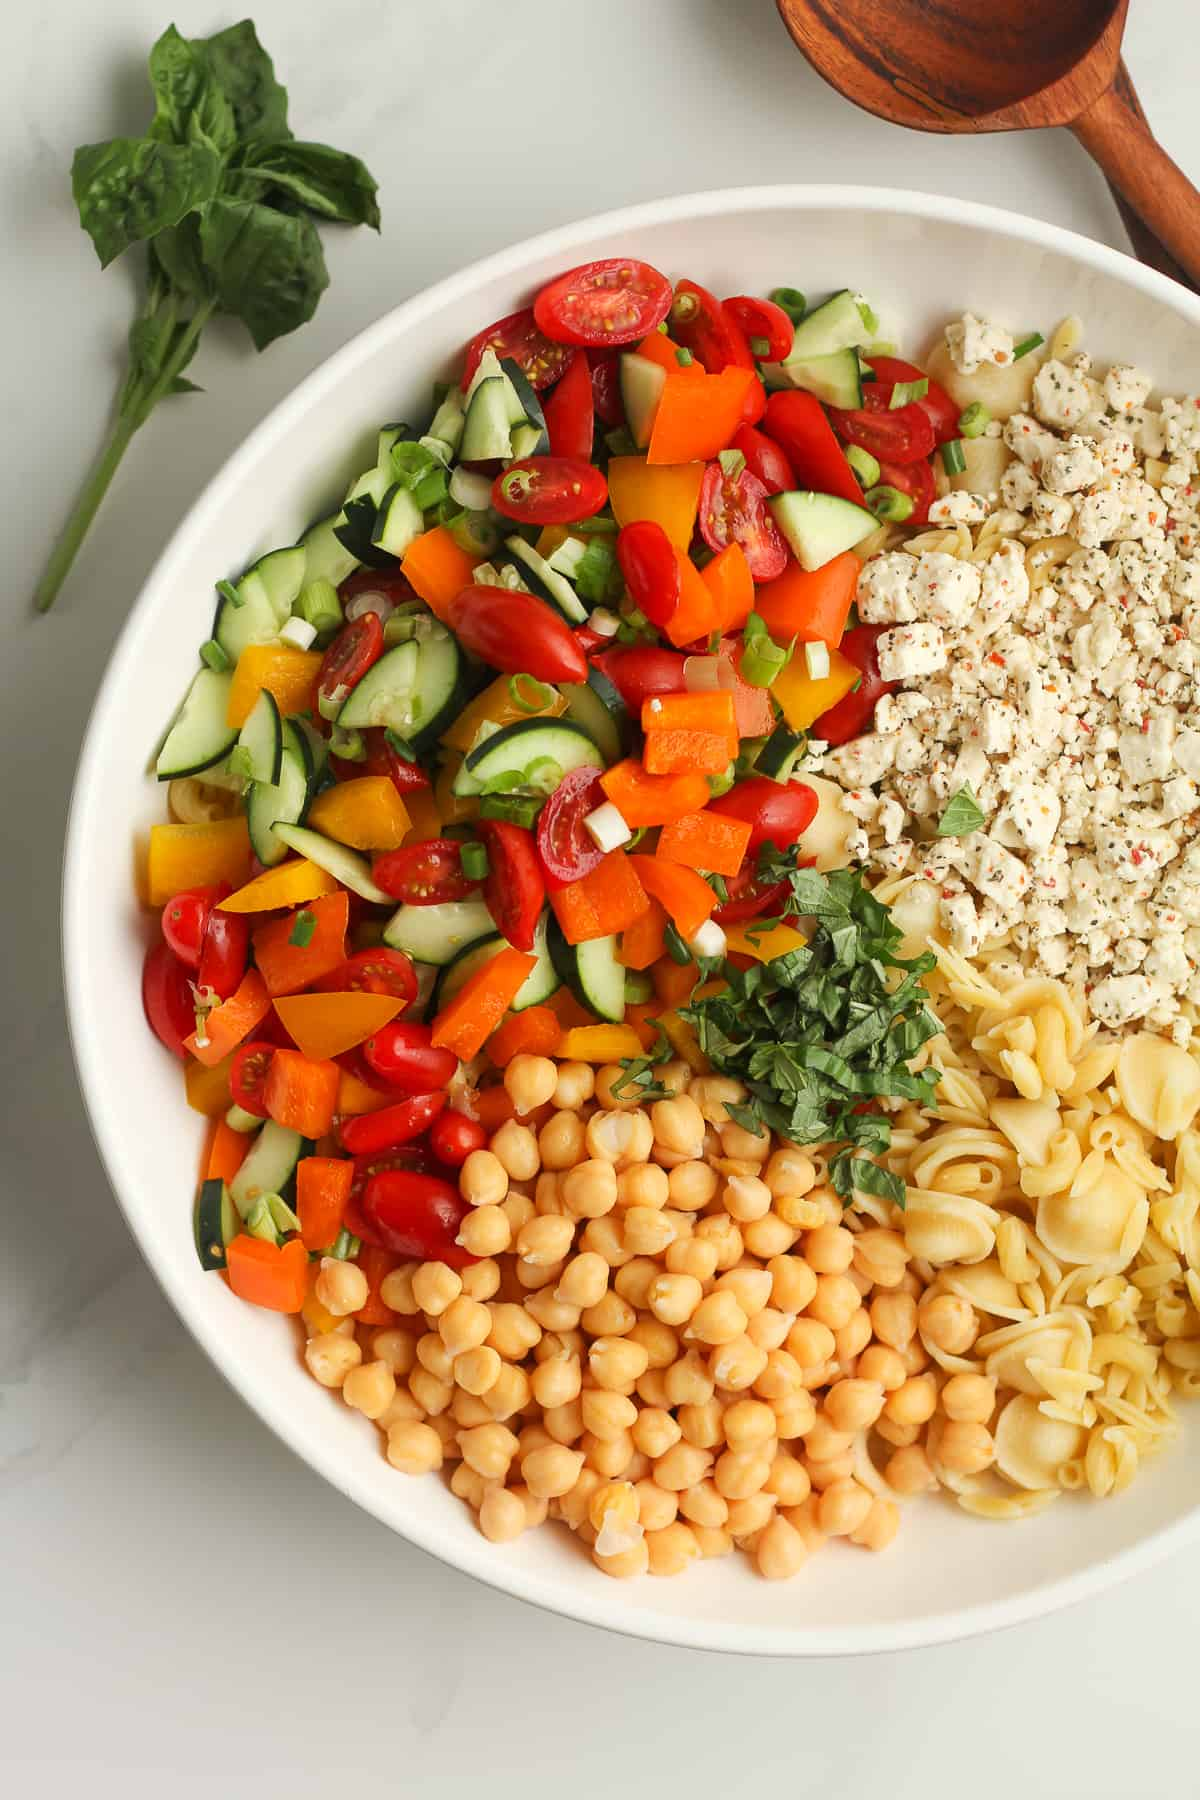 A bowl of the pasta salad ingredients, separated by ingredient.